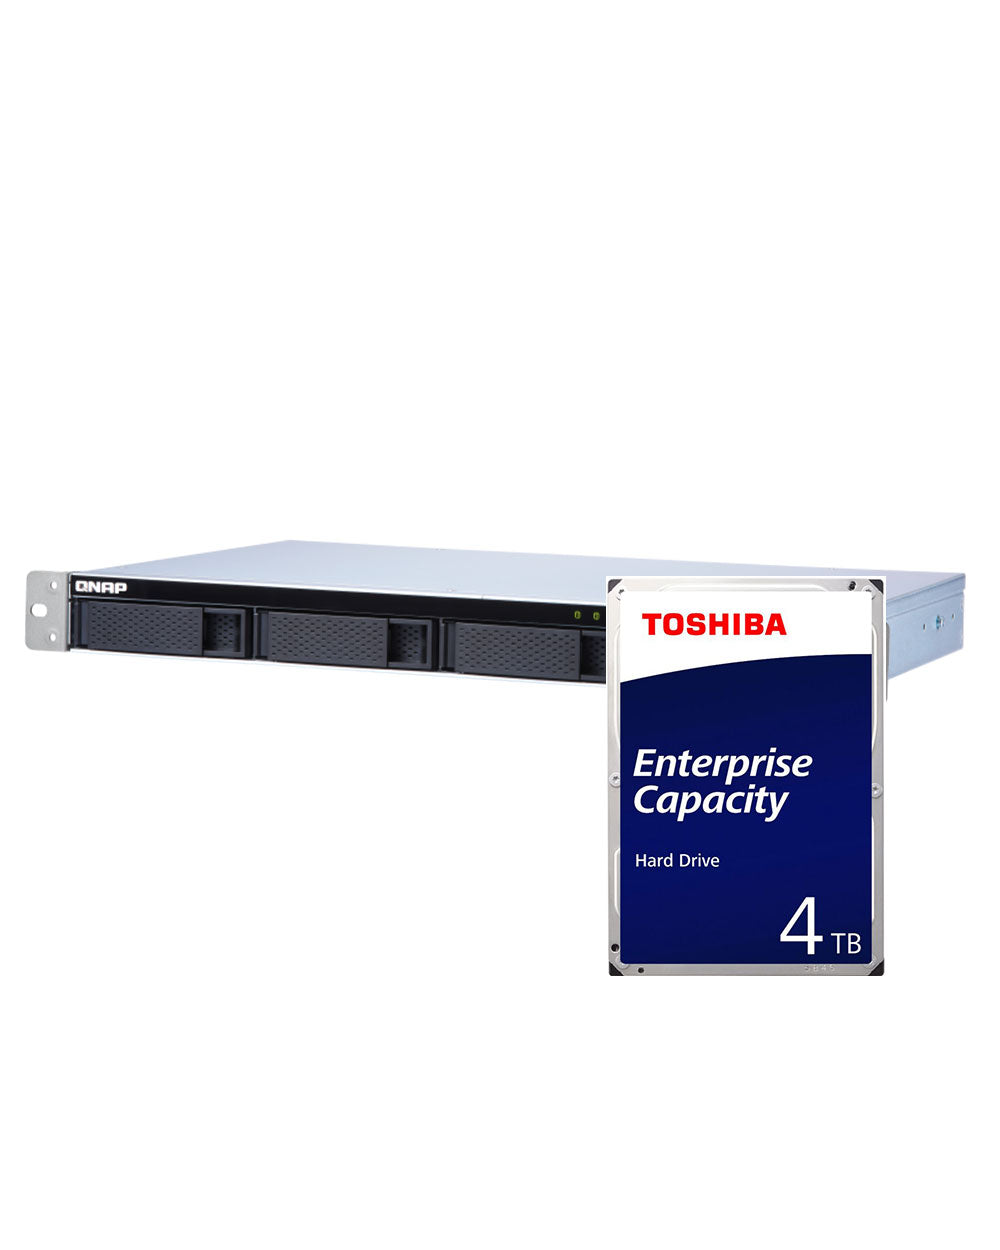 QNAP TS-431XeU-2G 16TB with 4TB Toshiba Enterprise Drives